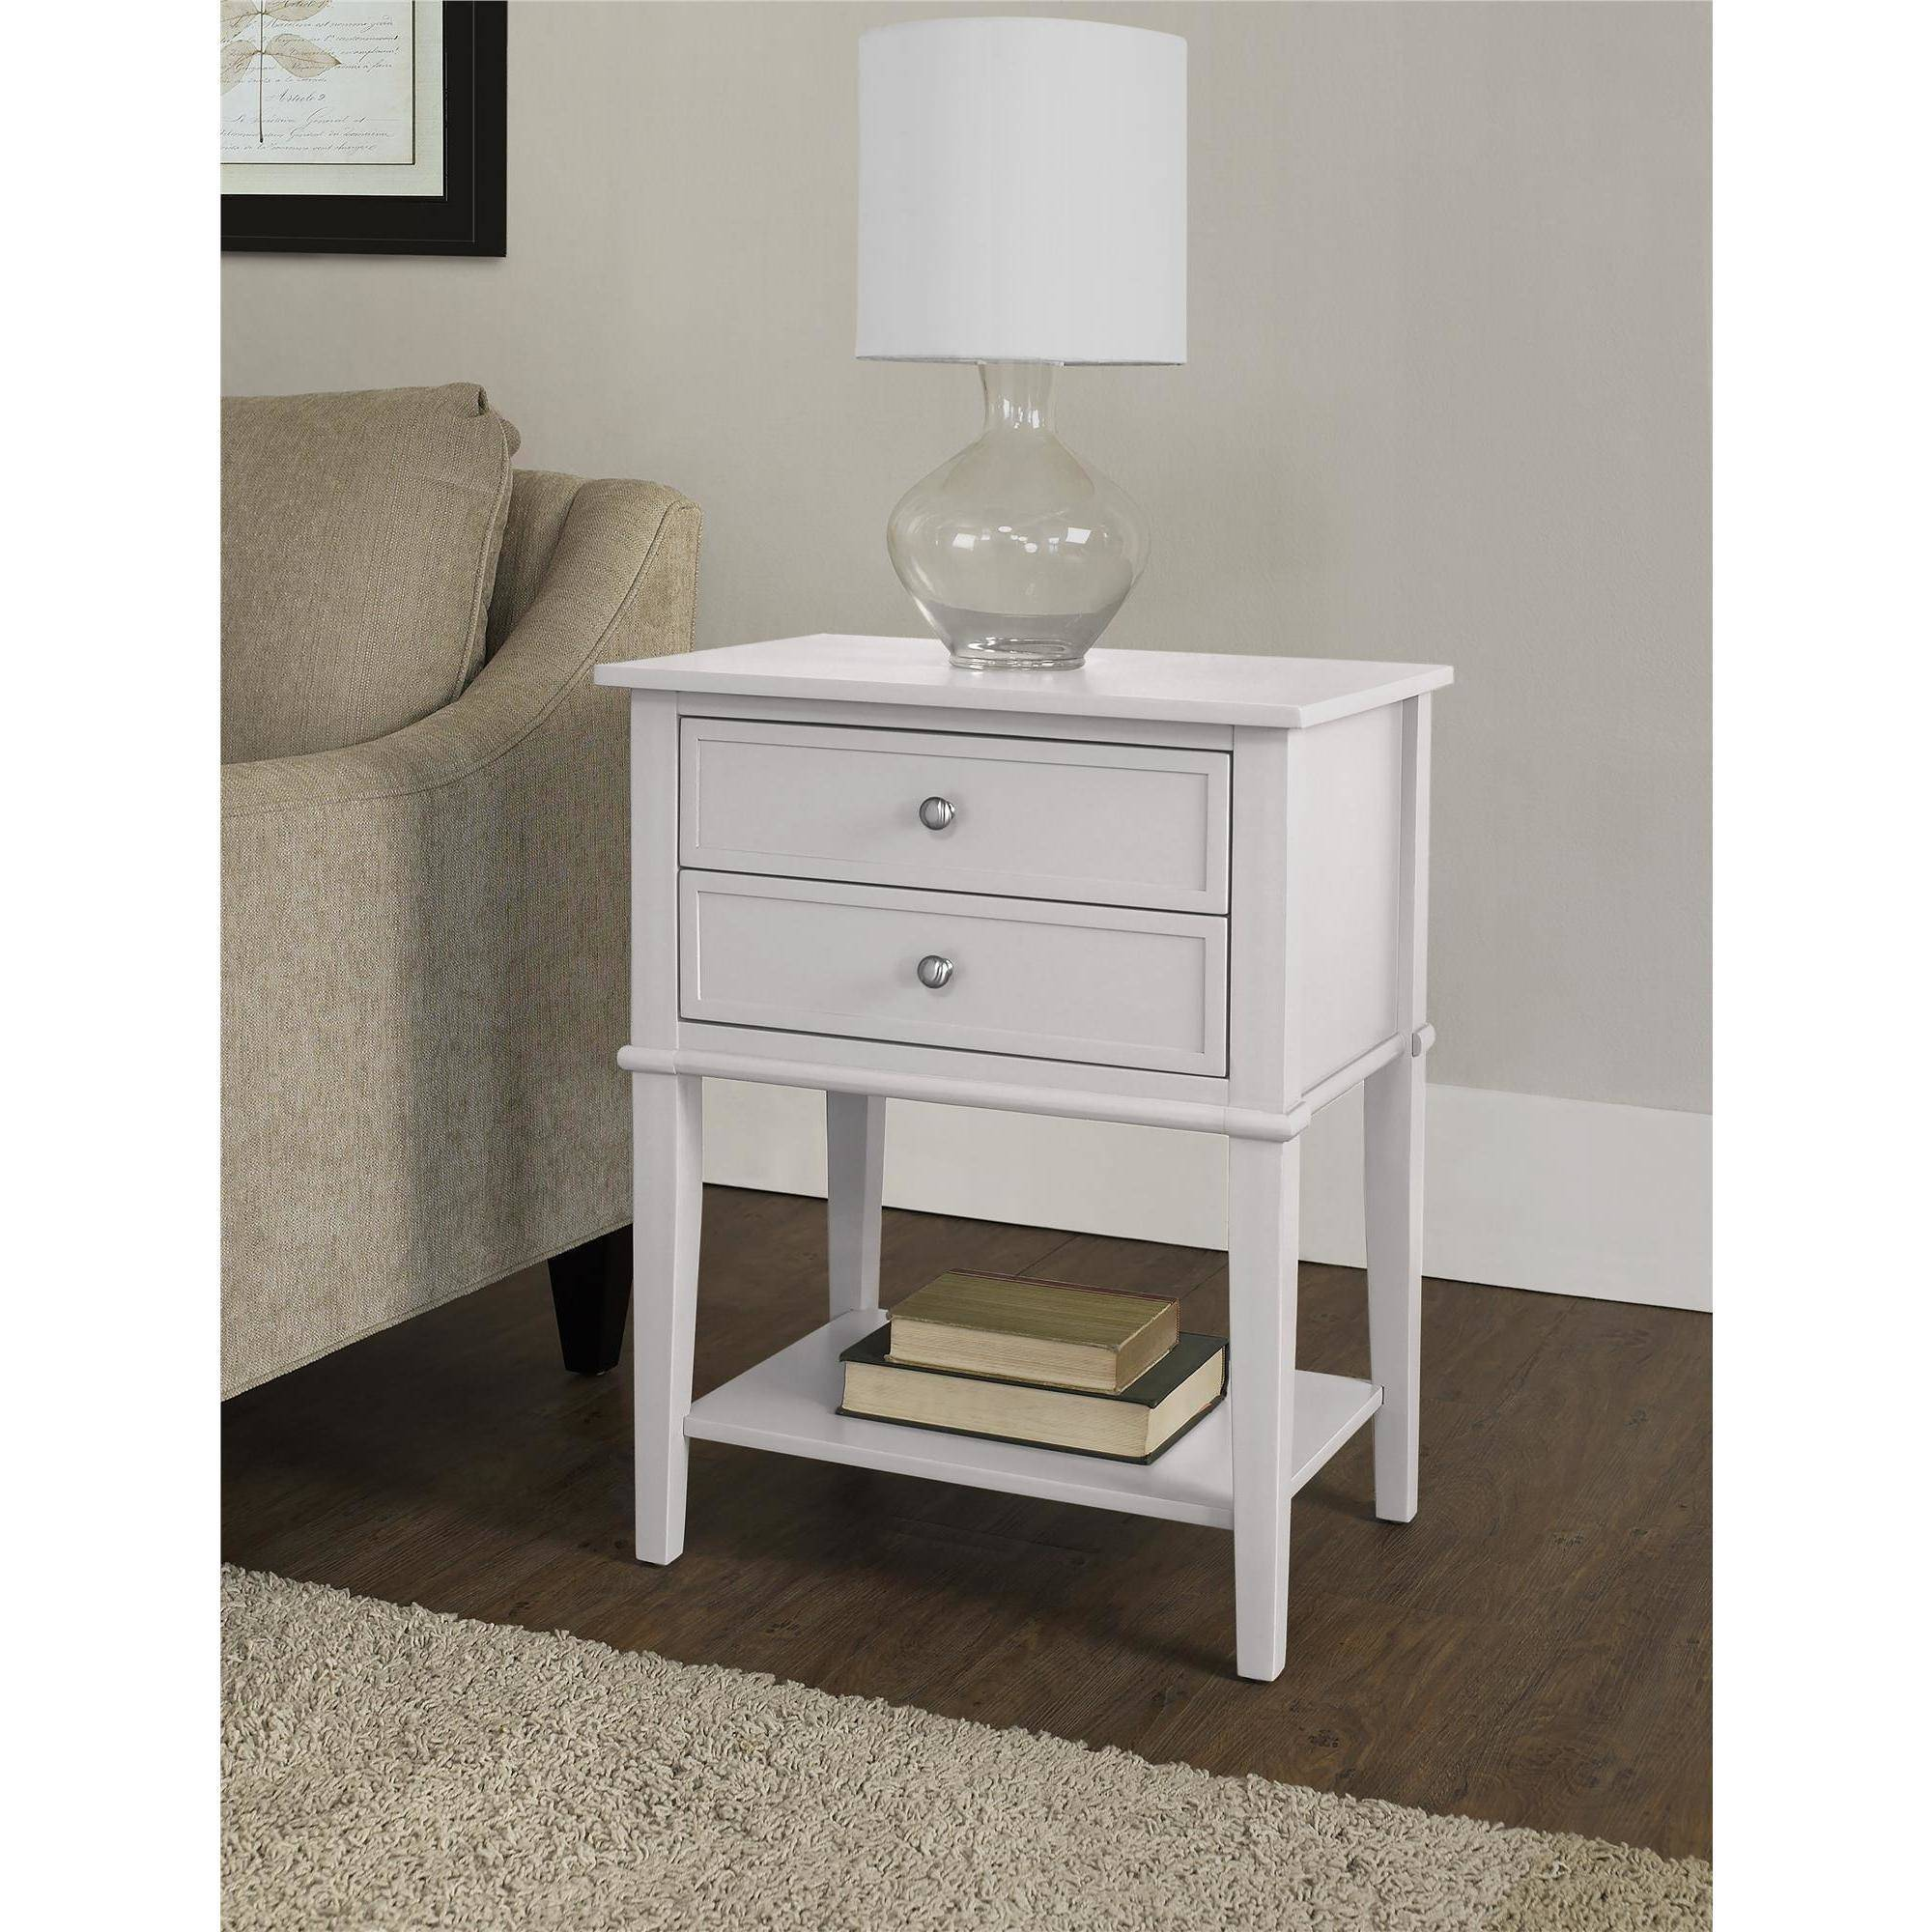 altra franklin accent table with drawers white end drawer stock furniture multiple colors ture bathroom makeup vanity small metal royal sofa set hidden storage round dining tables